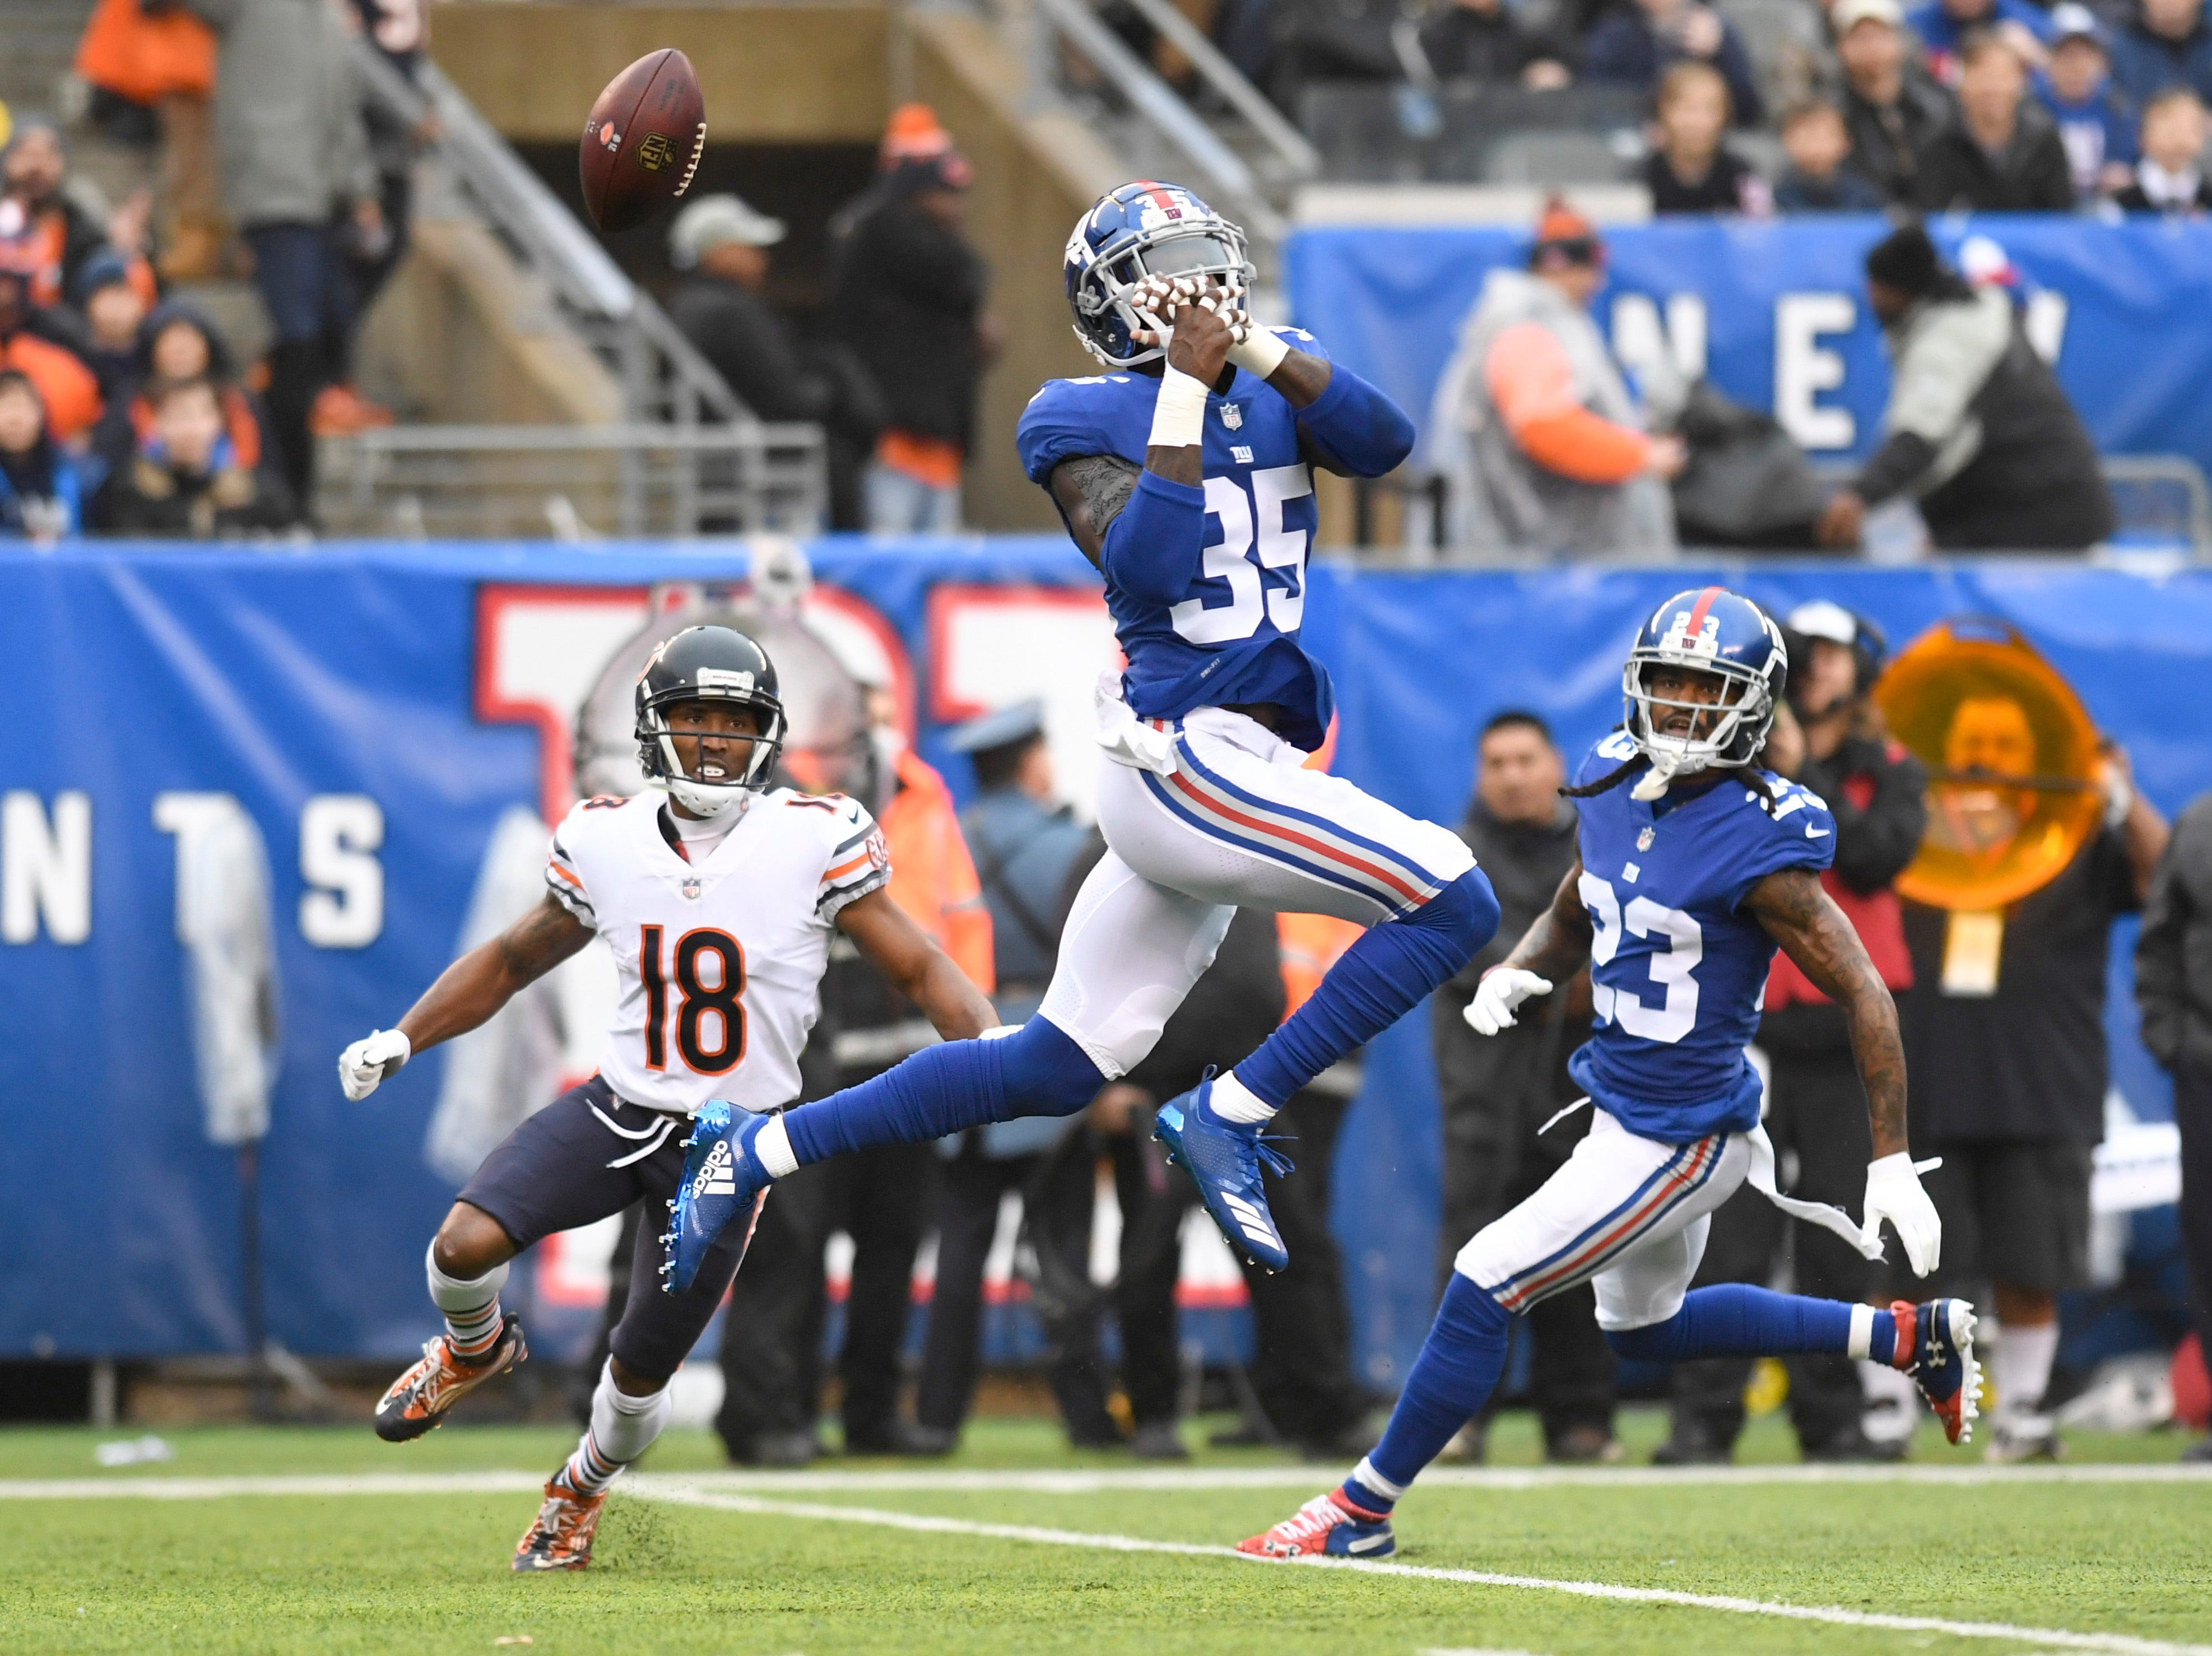 New York Giants cornerback Curtis Riley (35) nearly intercepts a pass intended for Chicago Bears wide receiver Taylor Gabriel (18) in the first half on Sunday, Dec. 2, 2018, in East Rutherford.